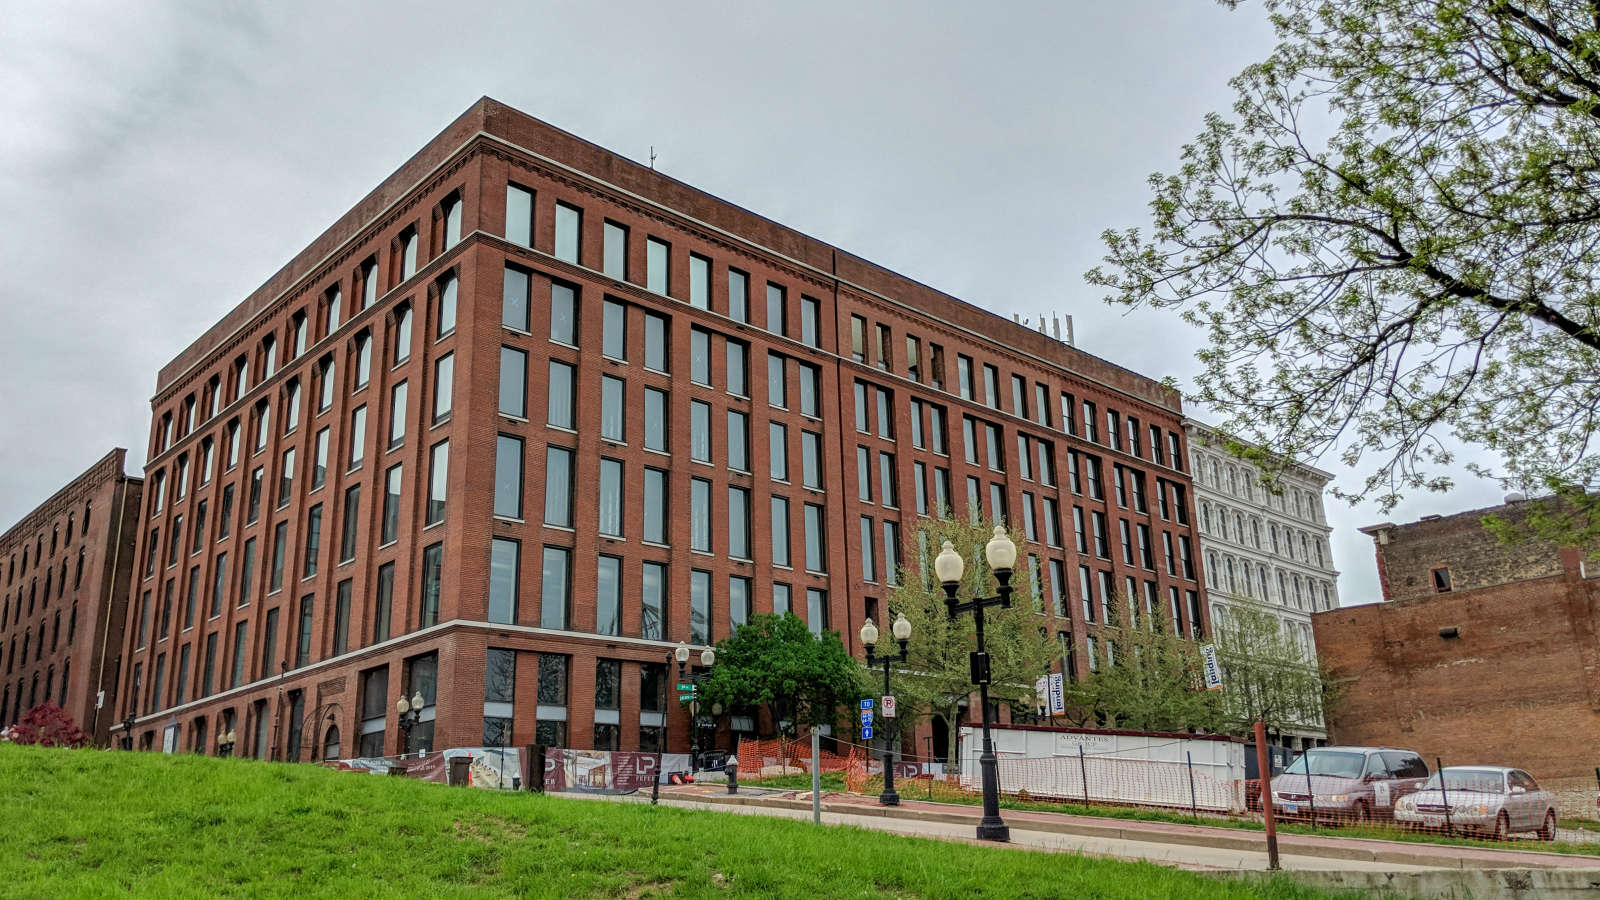 Renovation of the Peper Building Underway in Laclede's Landing